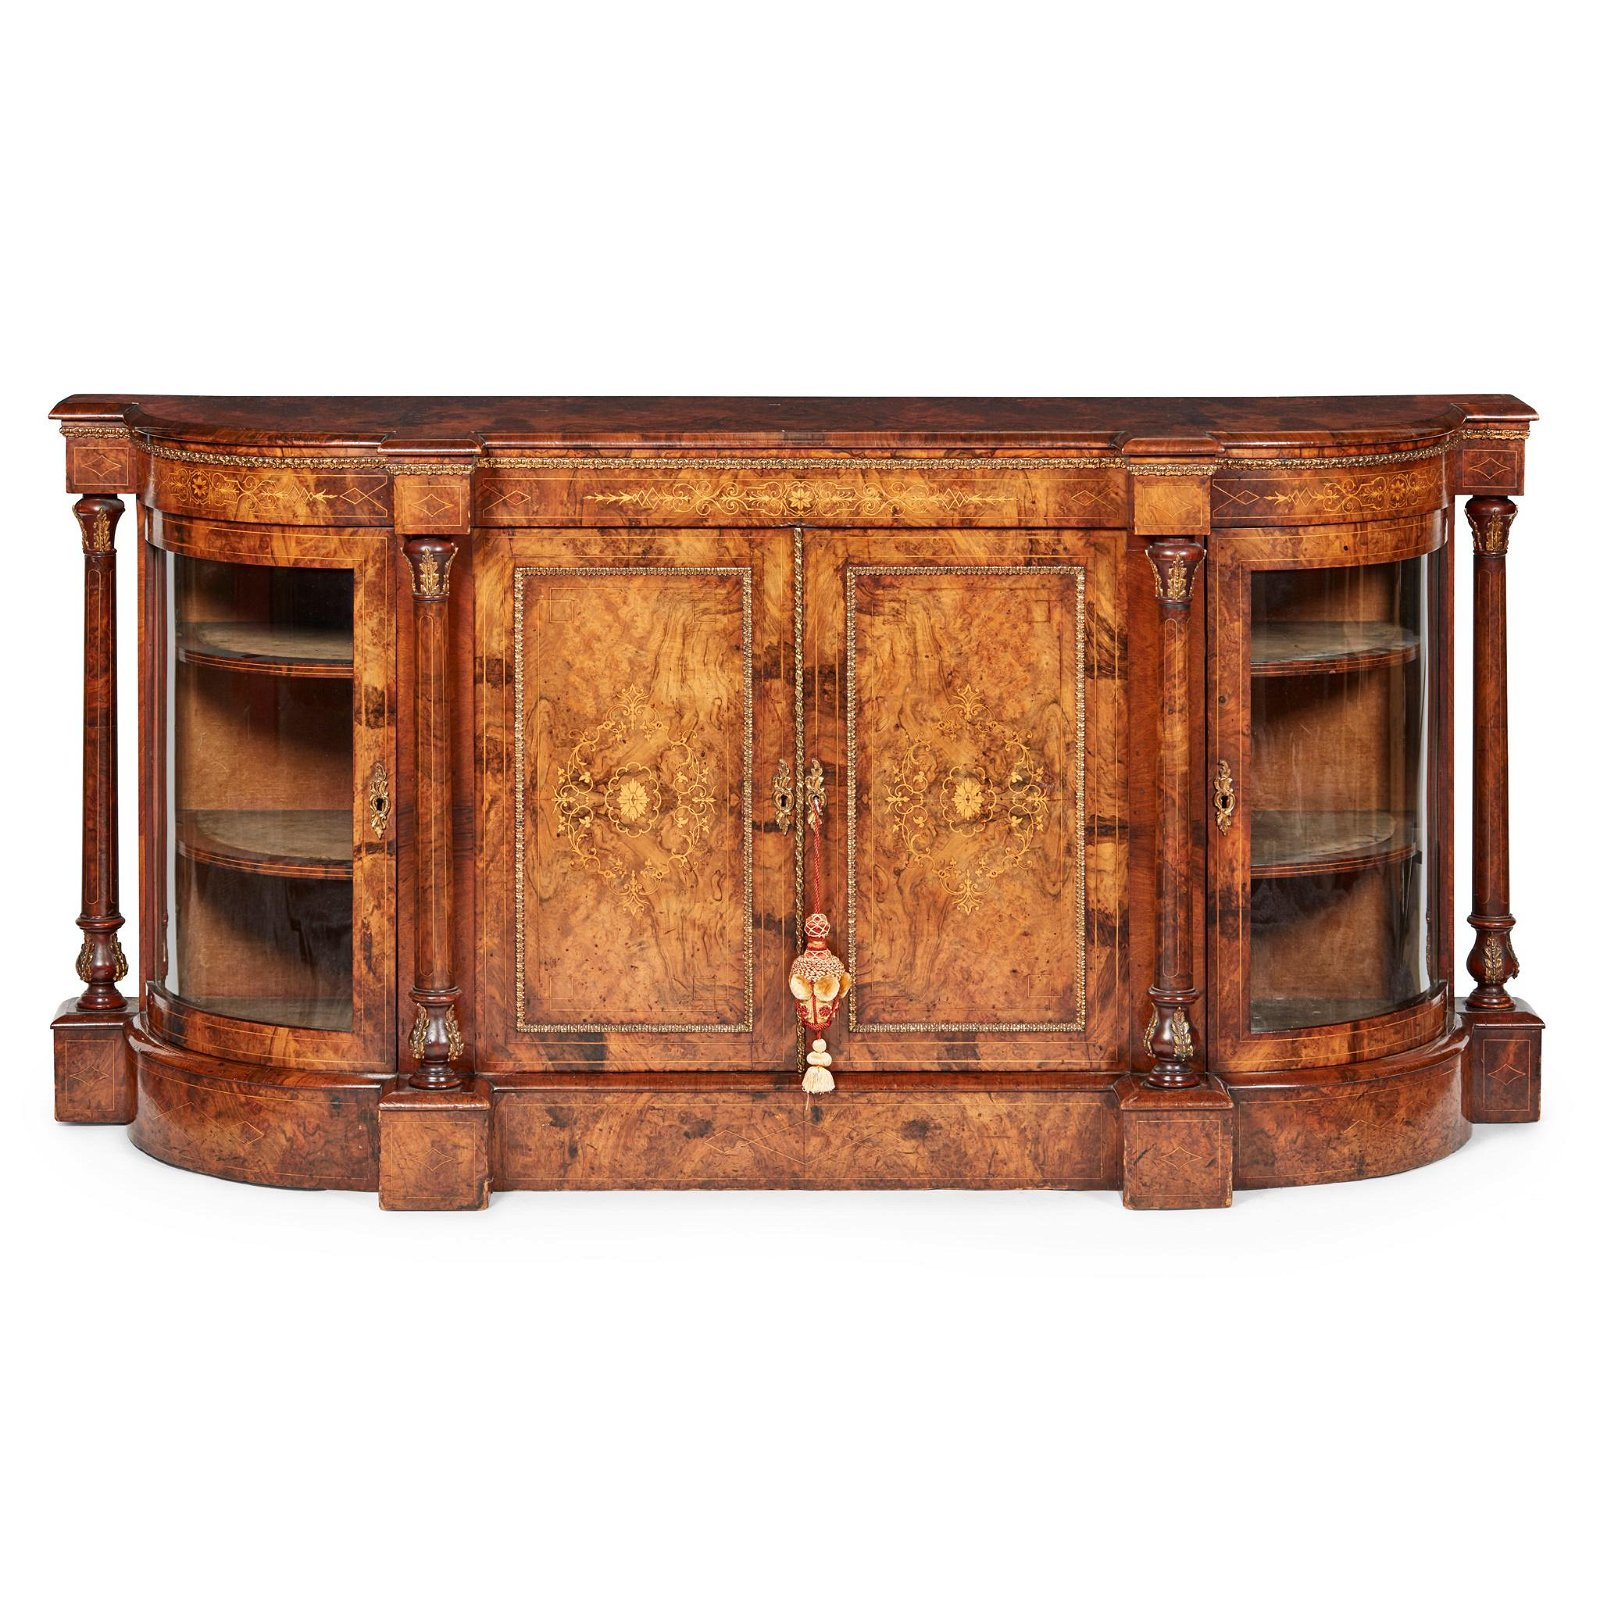 VICTORIAN WALNUT, INLAY, AND BRASS MOUNTED CREDENZA